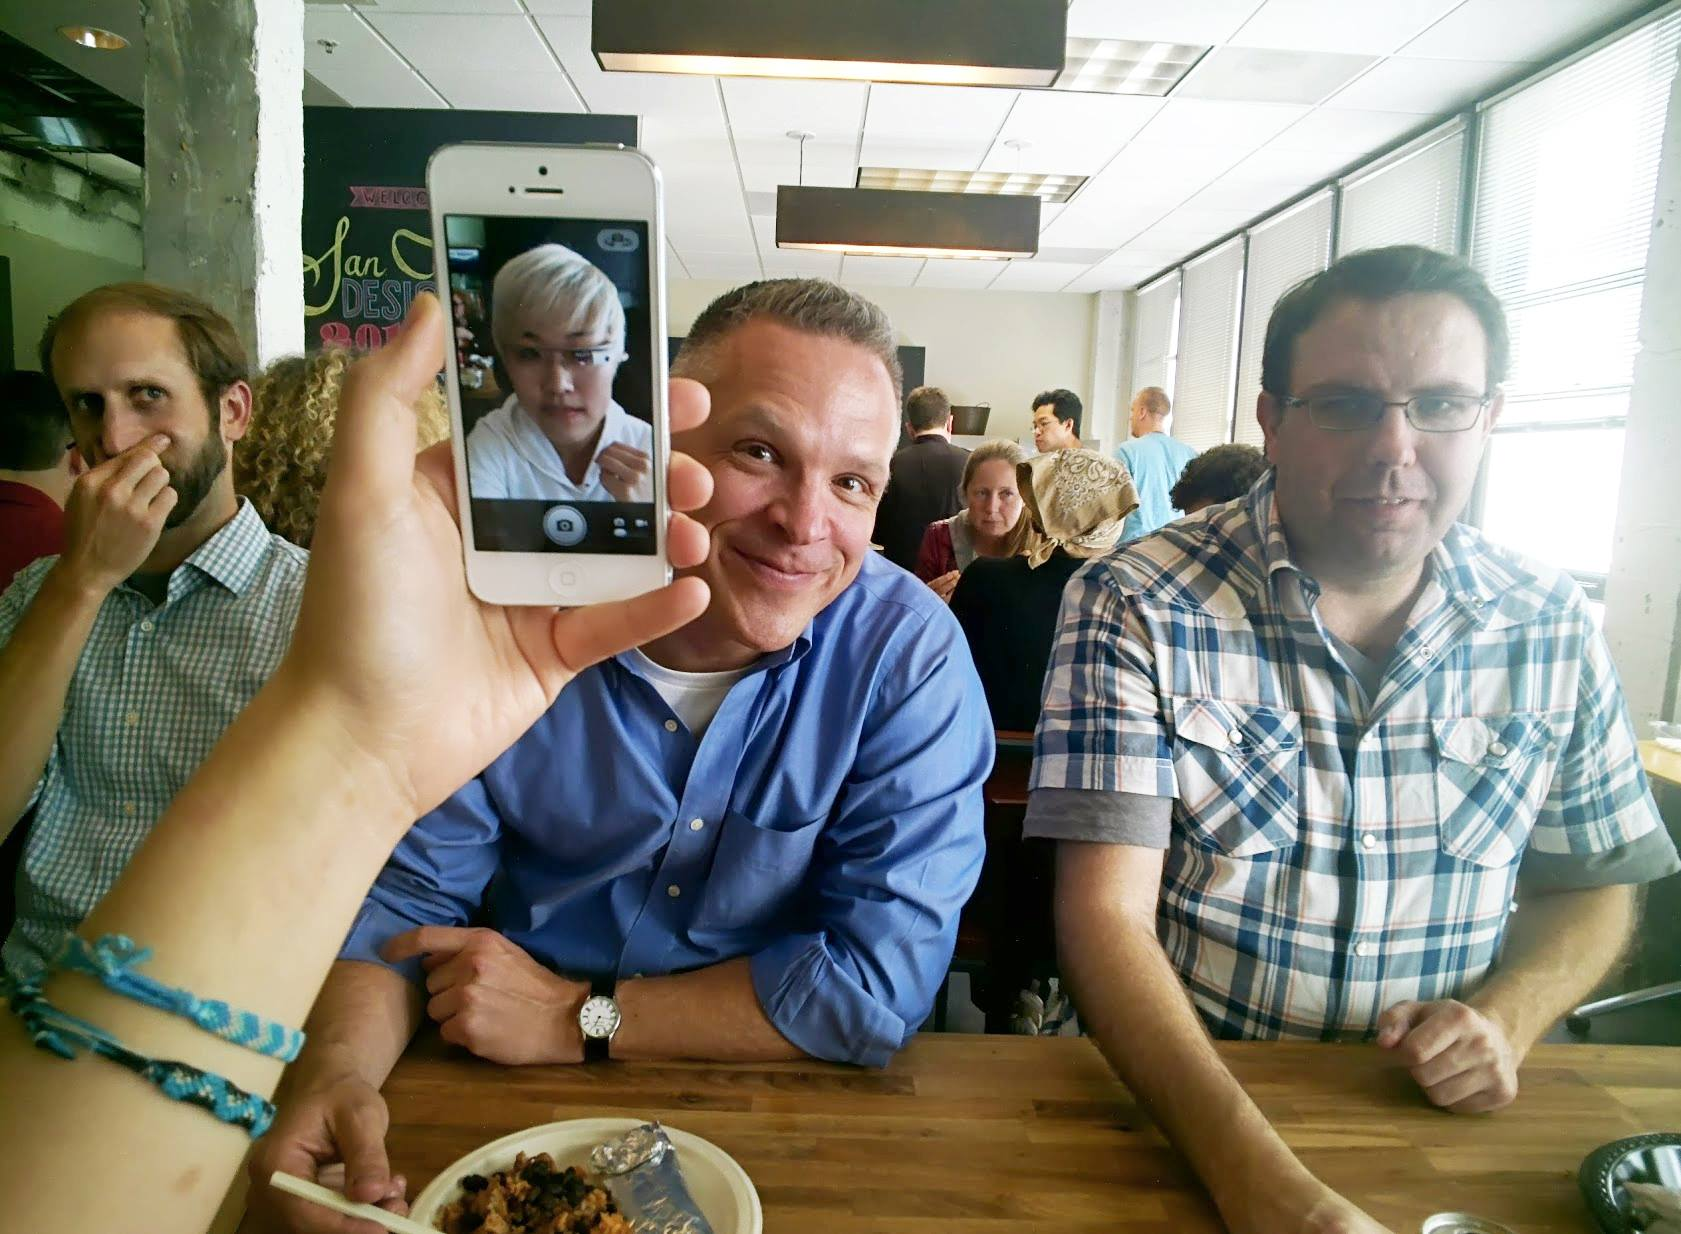 super-meta selfie taken by Glass during lunch. :)